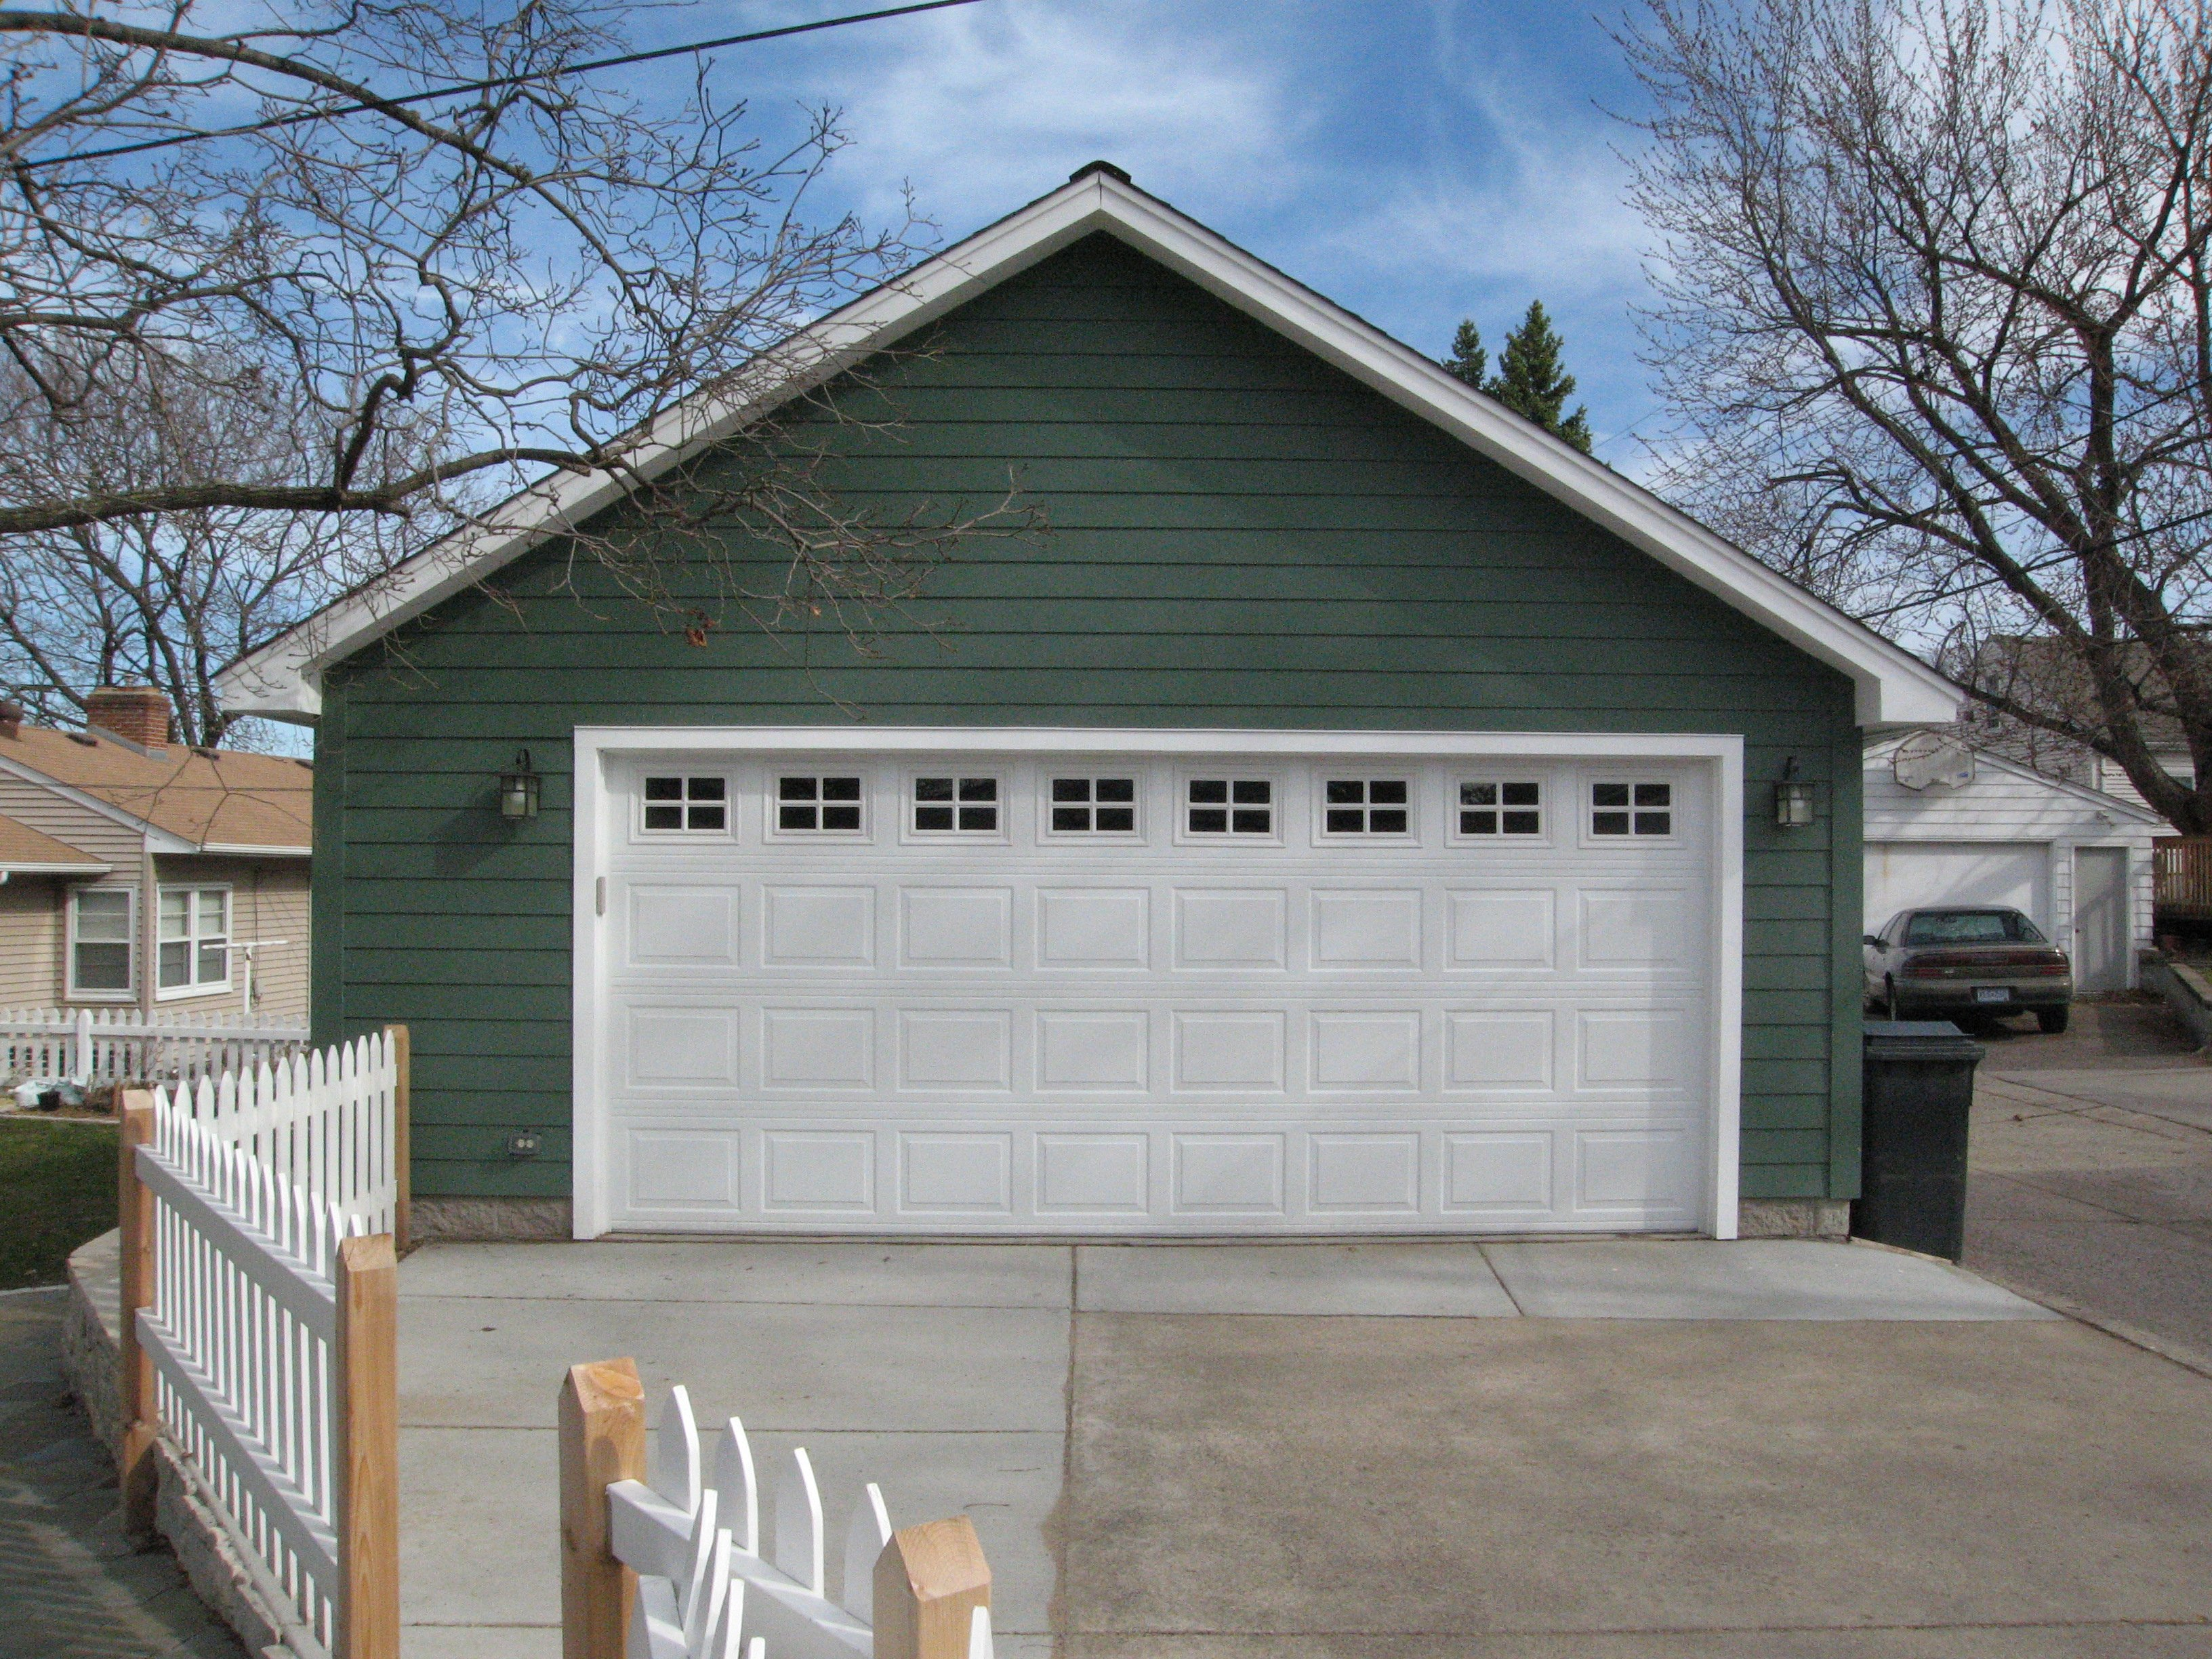 Free storage truss garage plans for Garage layout planner online